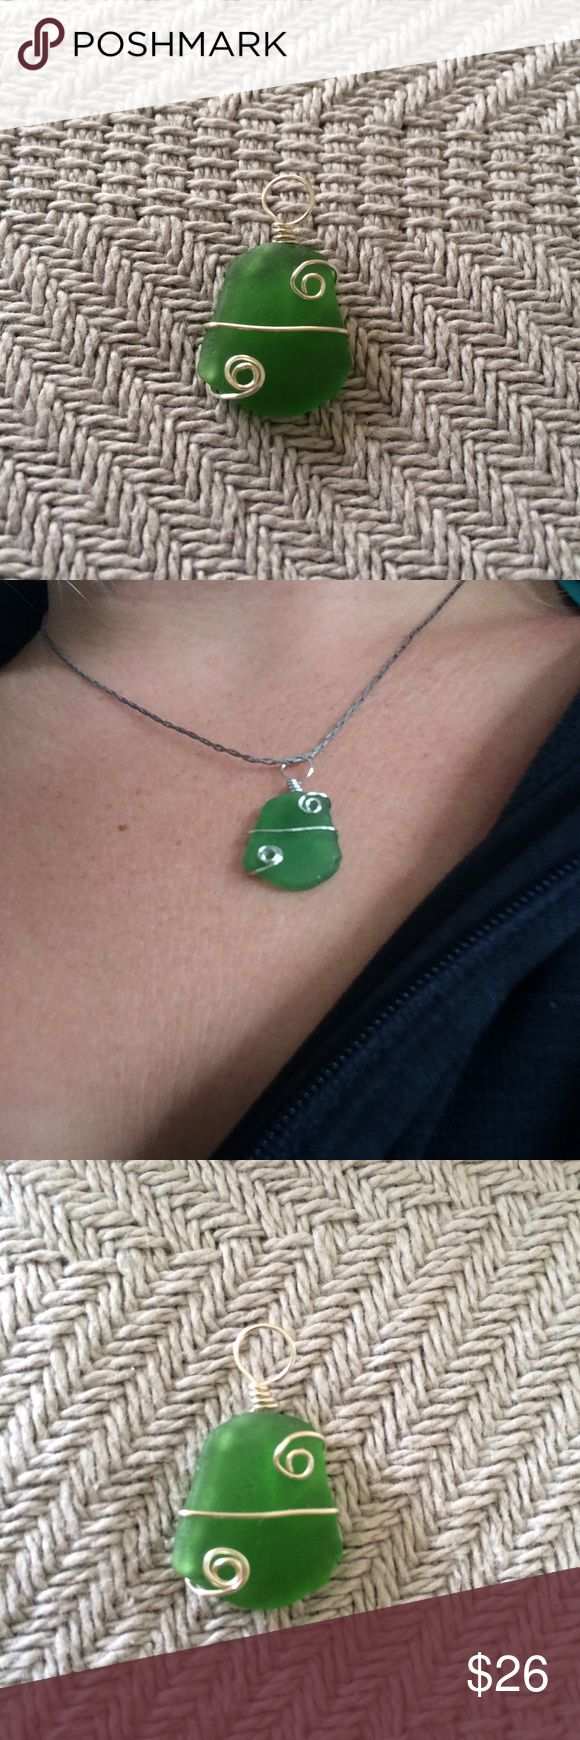 Hawaiian sea glass pendant. Handmade (by me) This sea glass comes from a beach in Hawaii, which is where I live. All of the sea glass and shells I use are actually are collected off the beach. I do not believe in diving to try to find the perfect shell. It is still a part of nature and is disrespectful to land and the people here. However sea glass and shells that wash up on the beach are meant to be admired and enjoy; it is natures way of showing us her beauty. I sell these items to help…